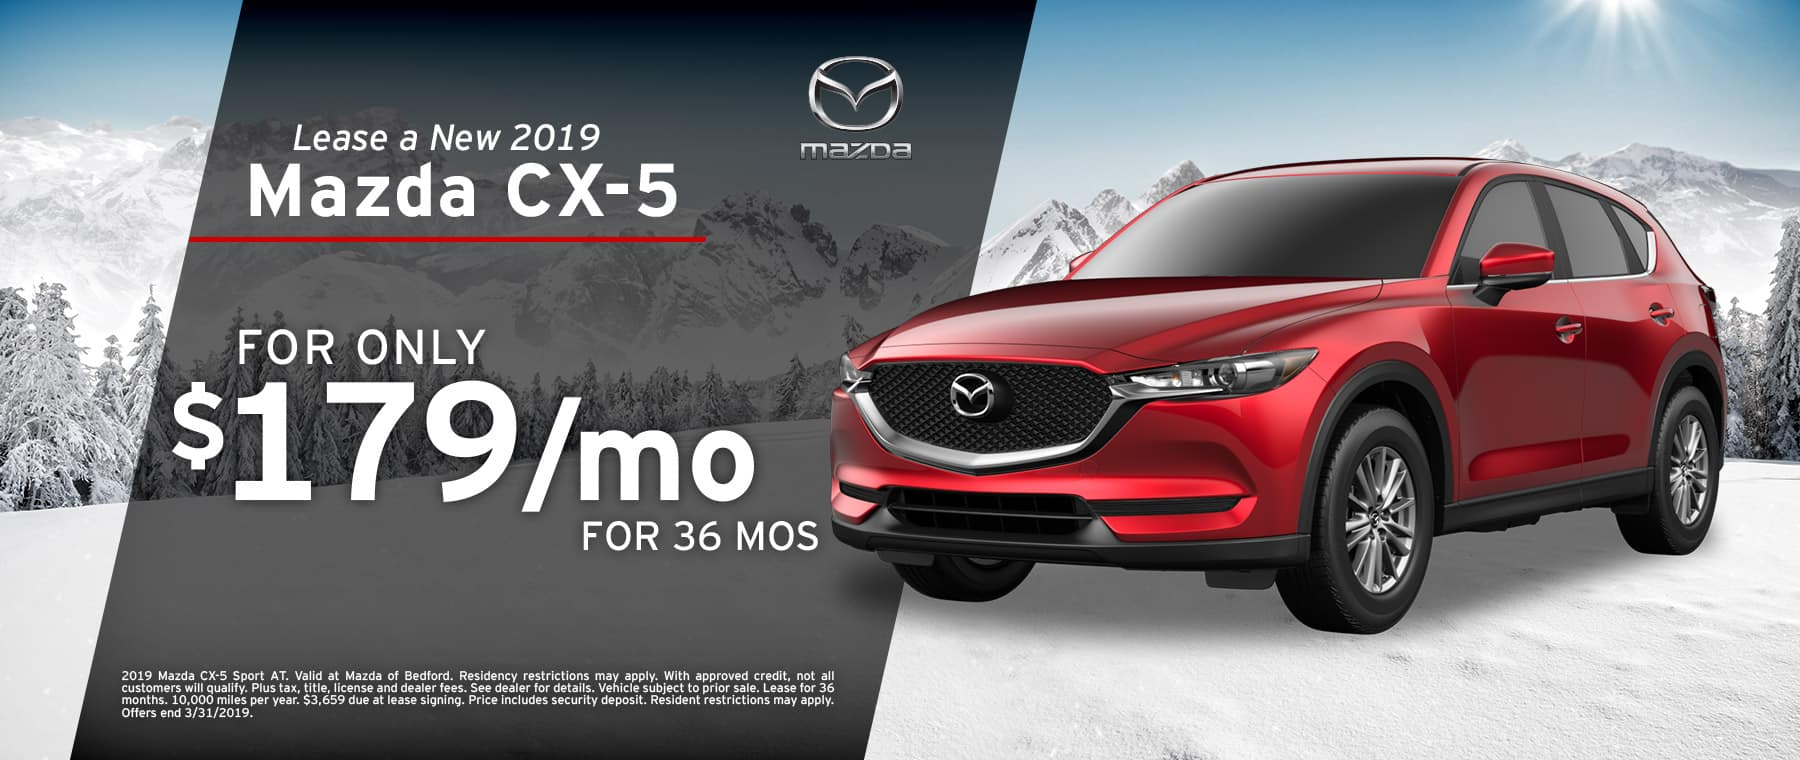 mazda of bedford lease specials | mazda of bedford | bedford, oh